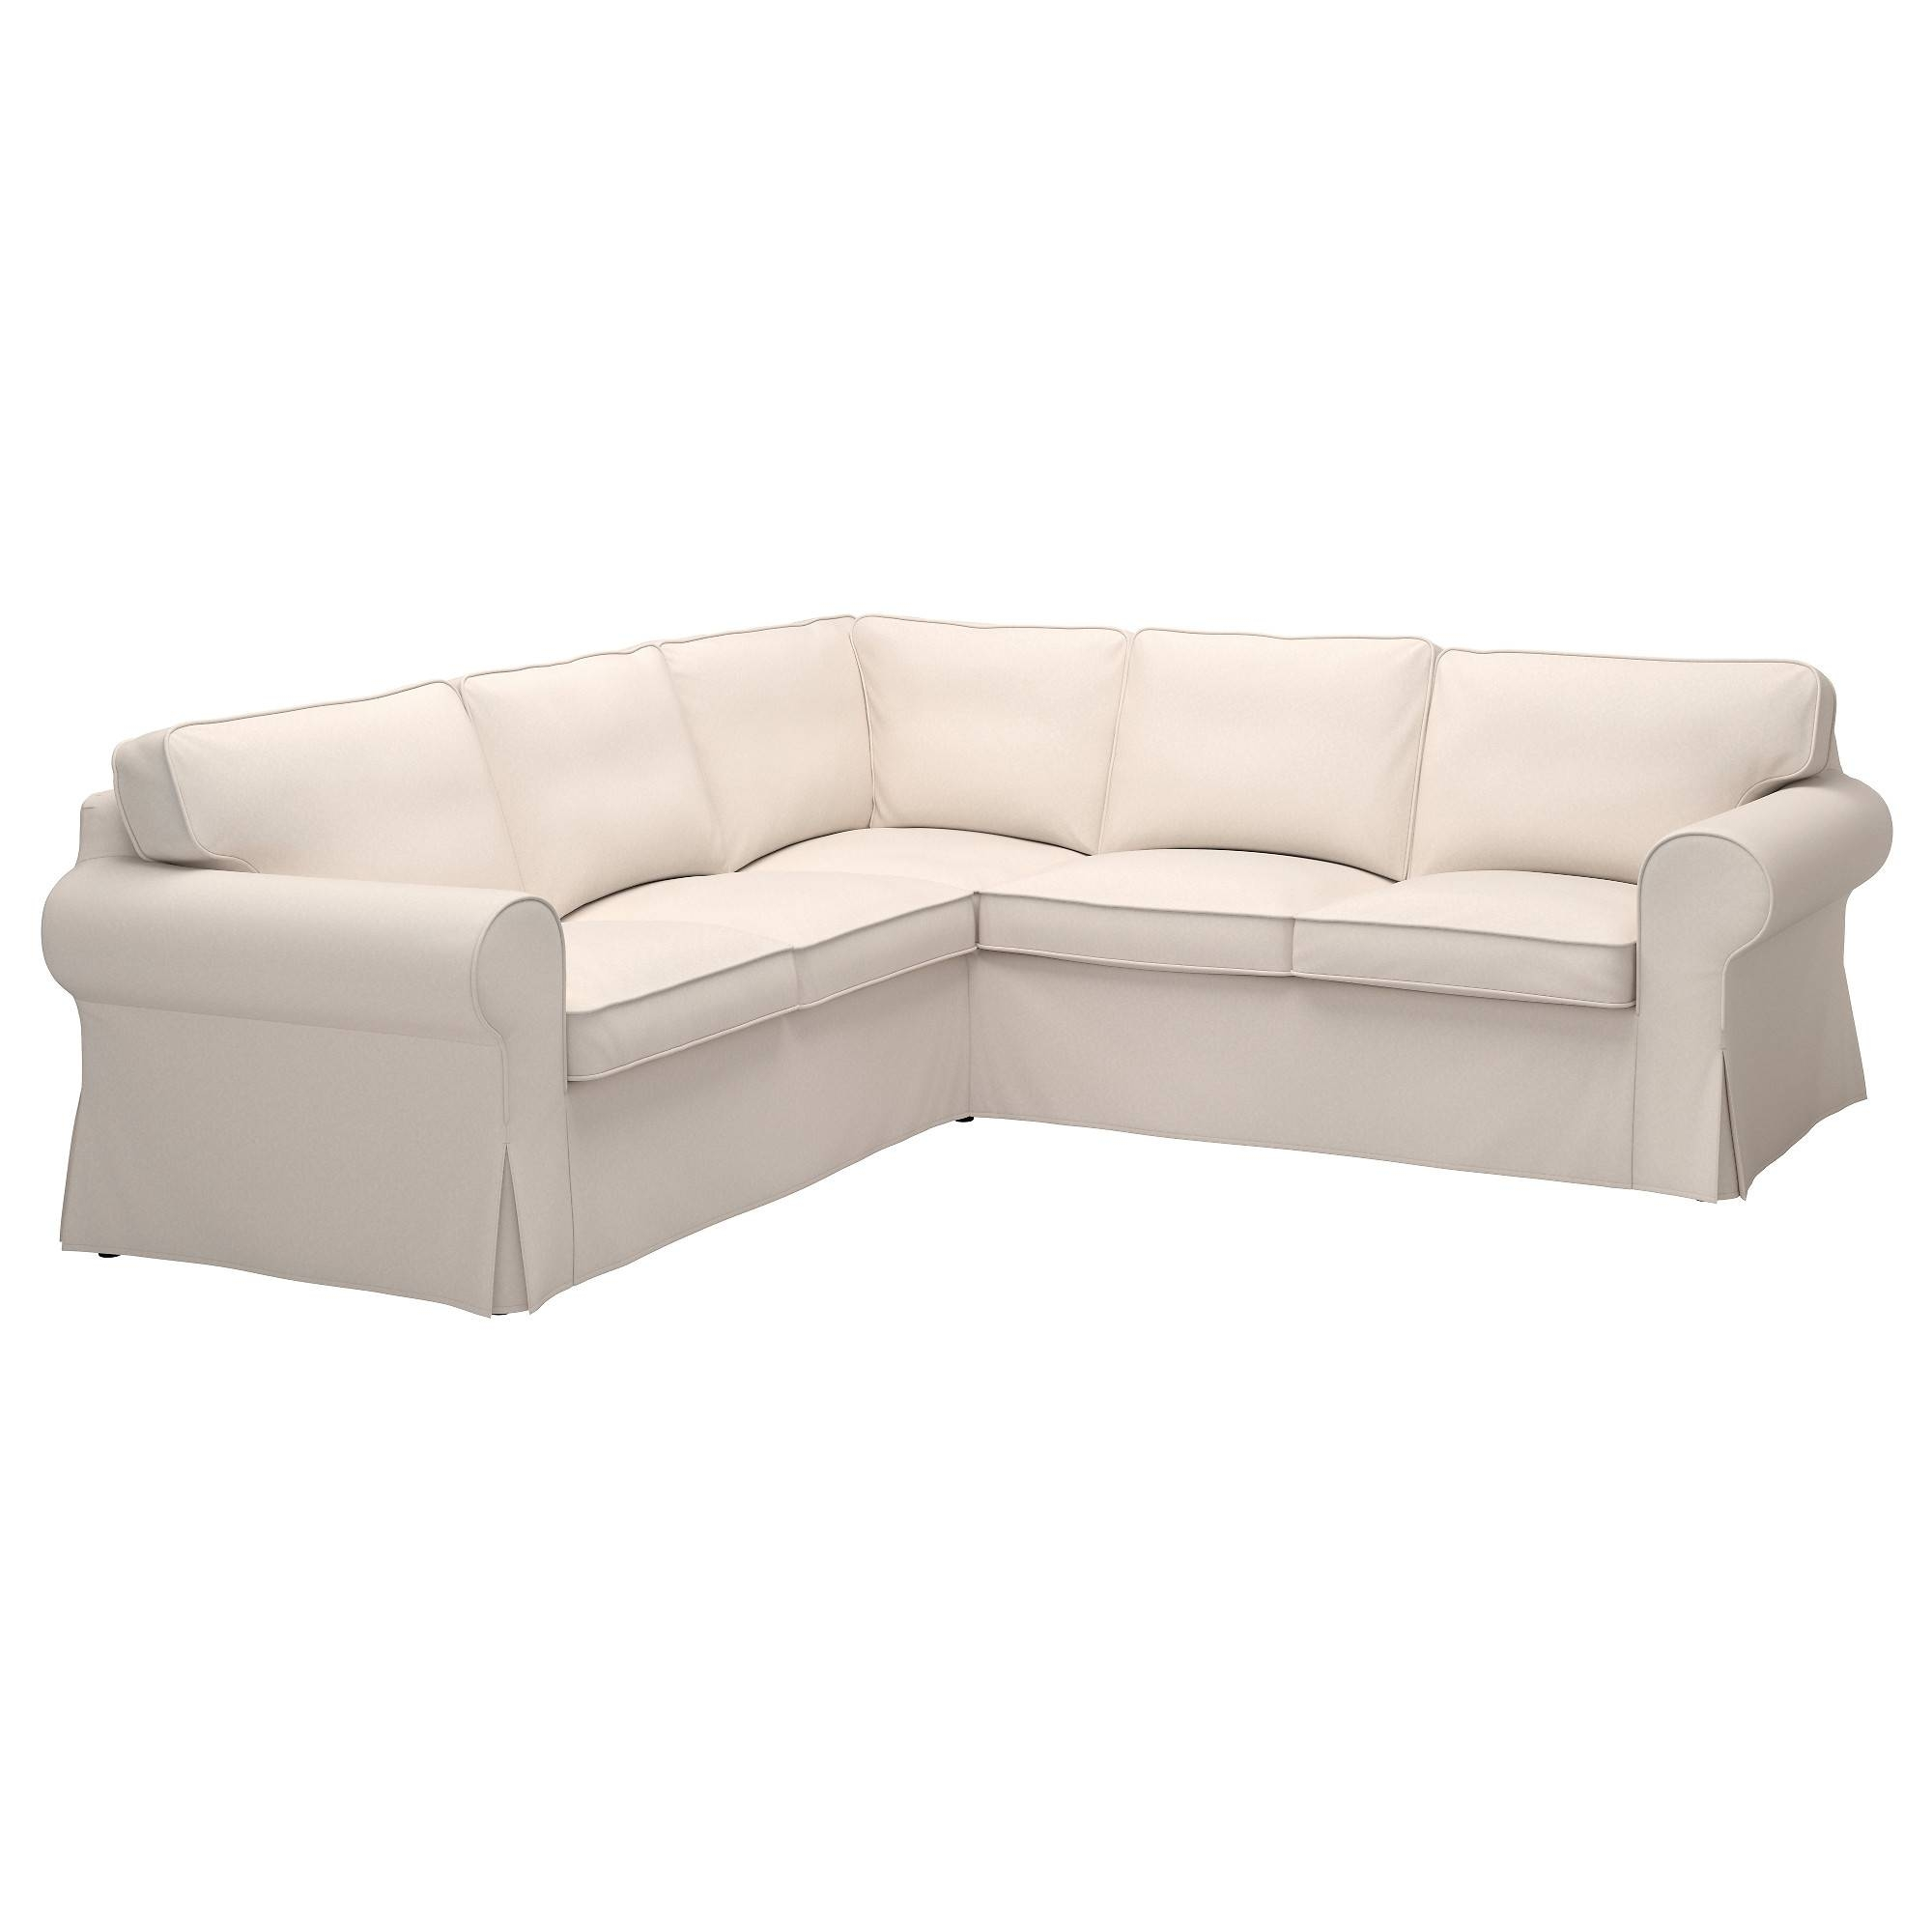 Ektorp Cover For 4-Seat Corner Sectional - Lofallet Beige - Ikea pertaining to 2X2 Corner Sofas (Image 7 of 30)